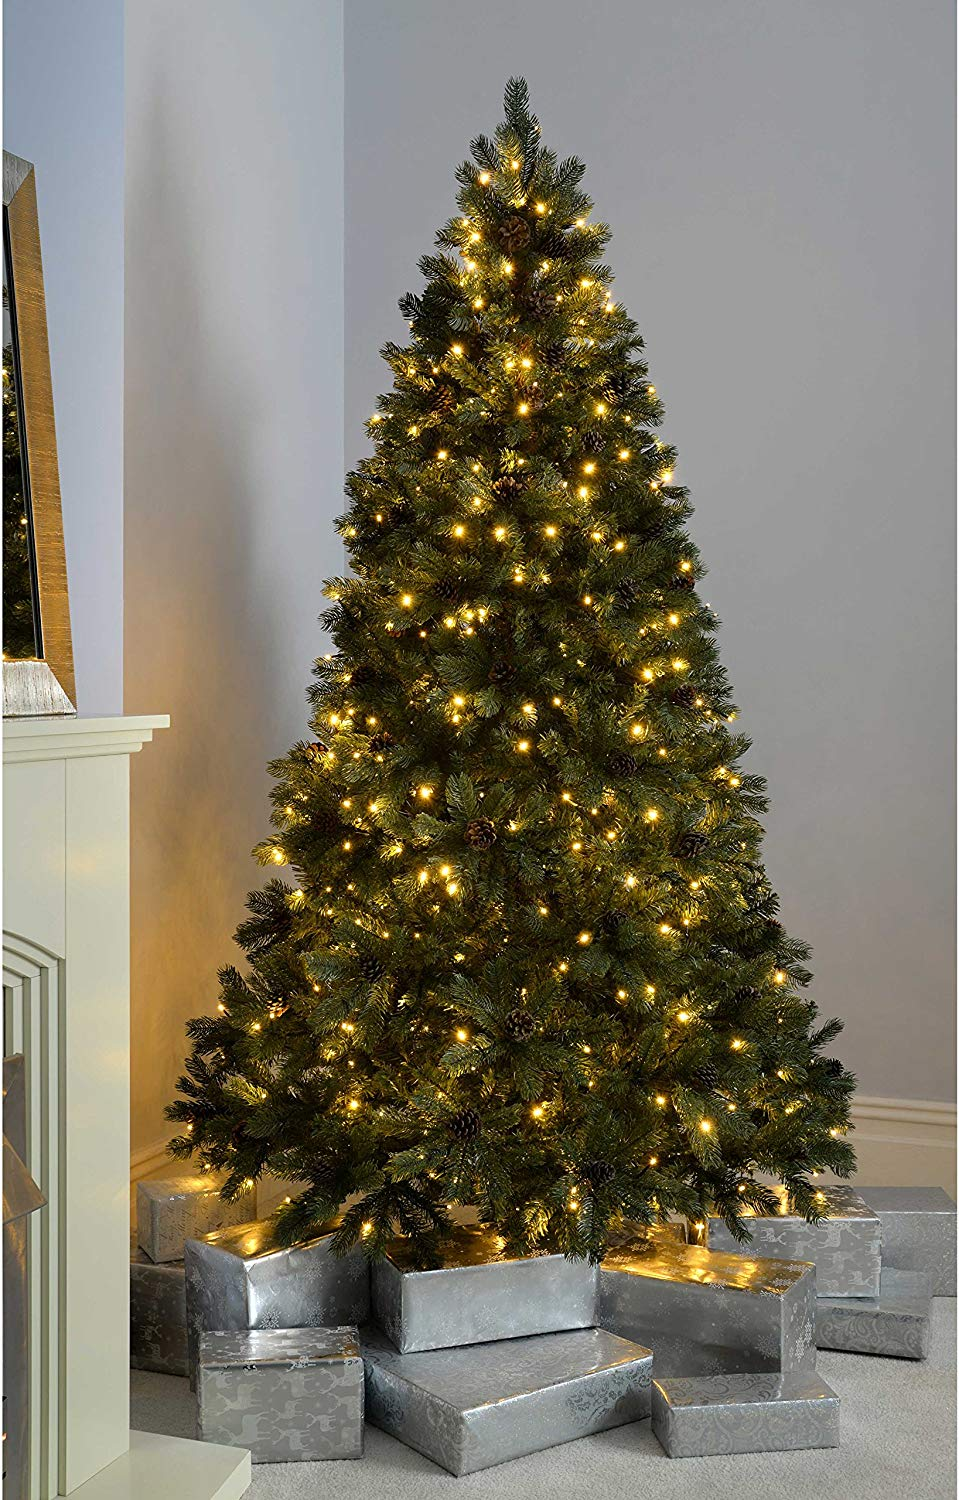 7ft (2.1m) Craford Pine Pre-Lit Christmas Tree with 500 Warm White LED Lights & mini Pine Cones